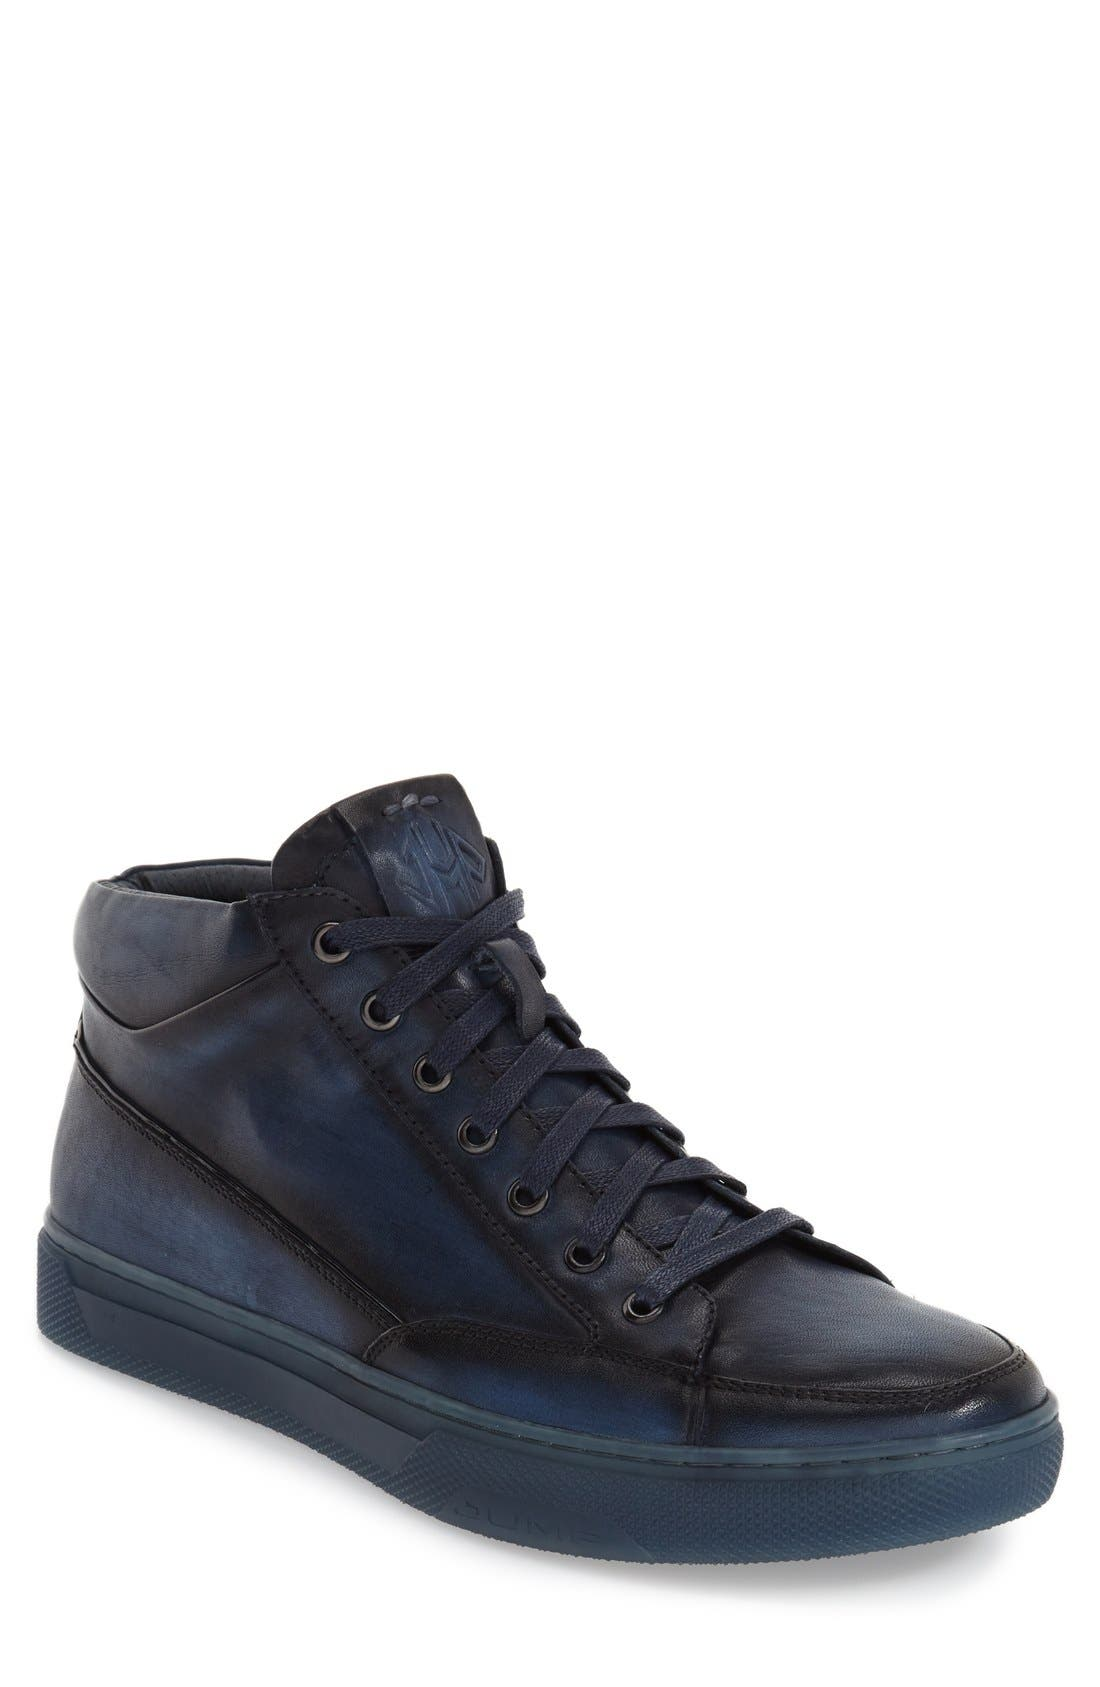 JUMP, 'Strickland' Sneaker, Main thumbnail 1, color, NAVY LEATHER